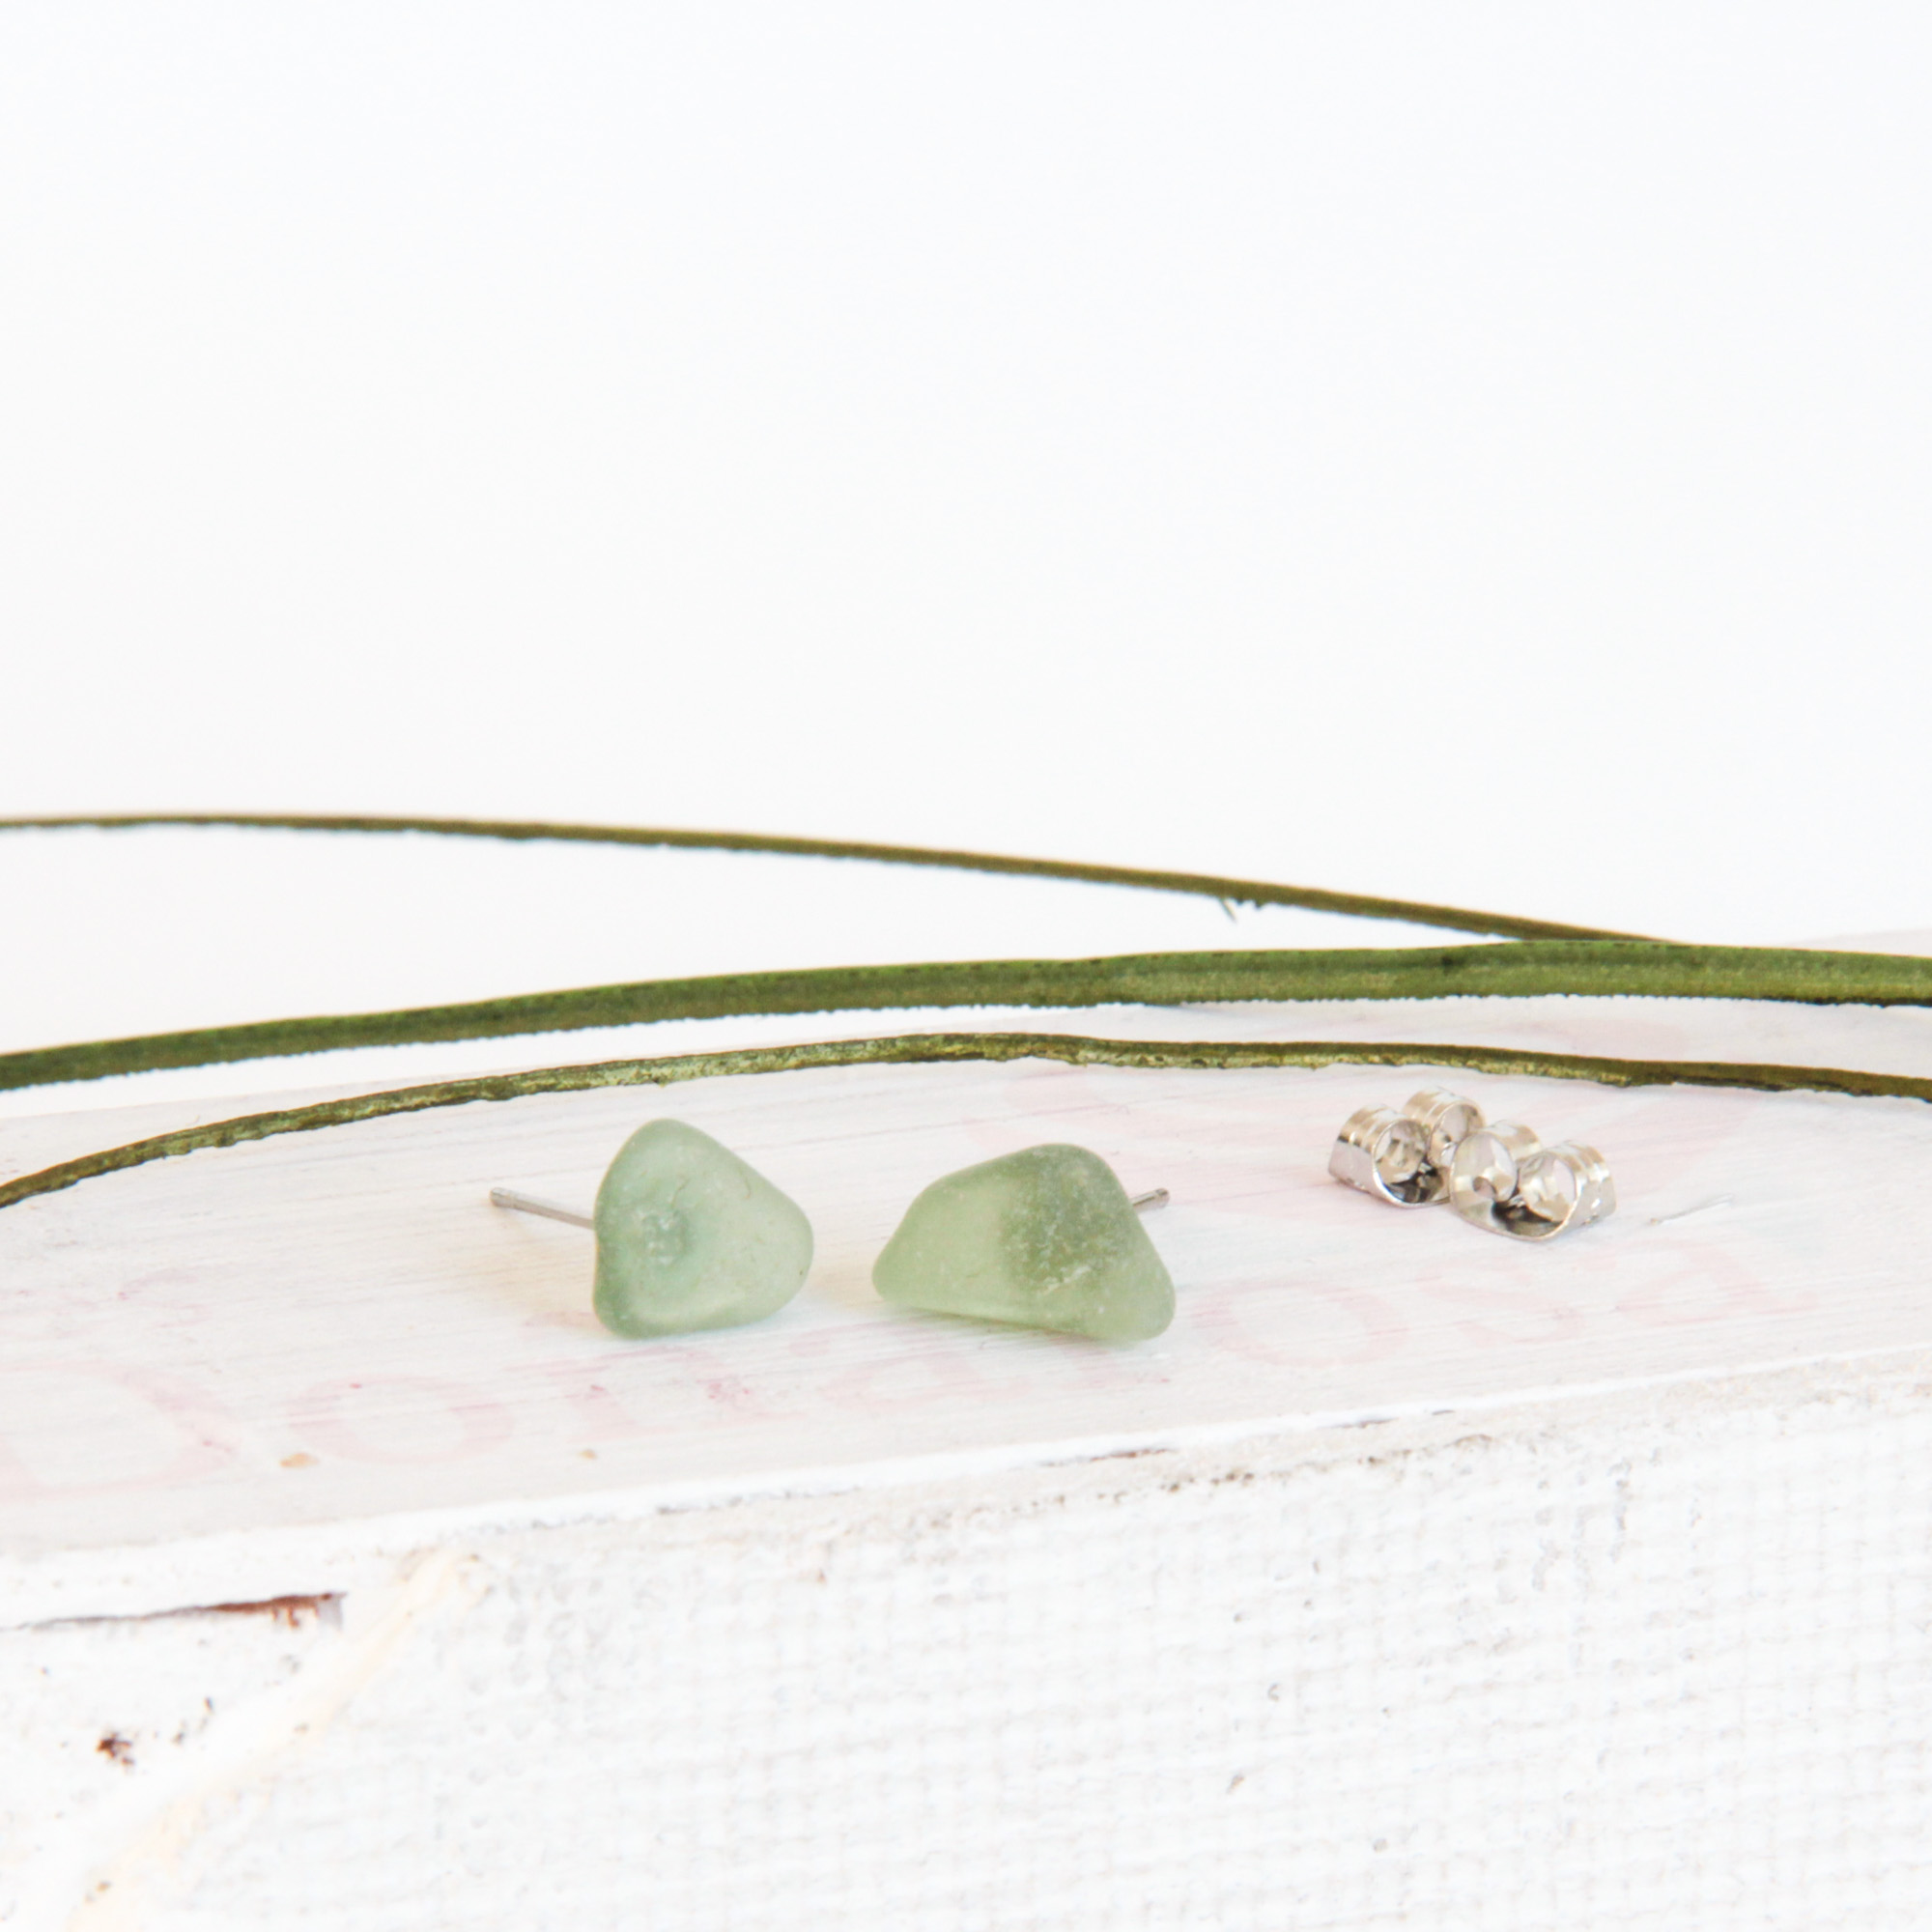 green sea glass studs - • genuine sea glass jewellery from France• handcollected• stainless steel posts• SGES515 Euro